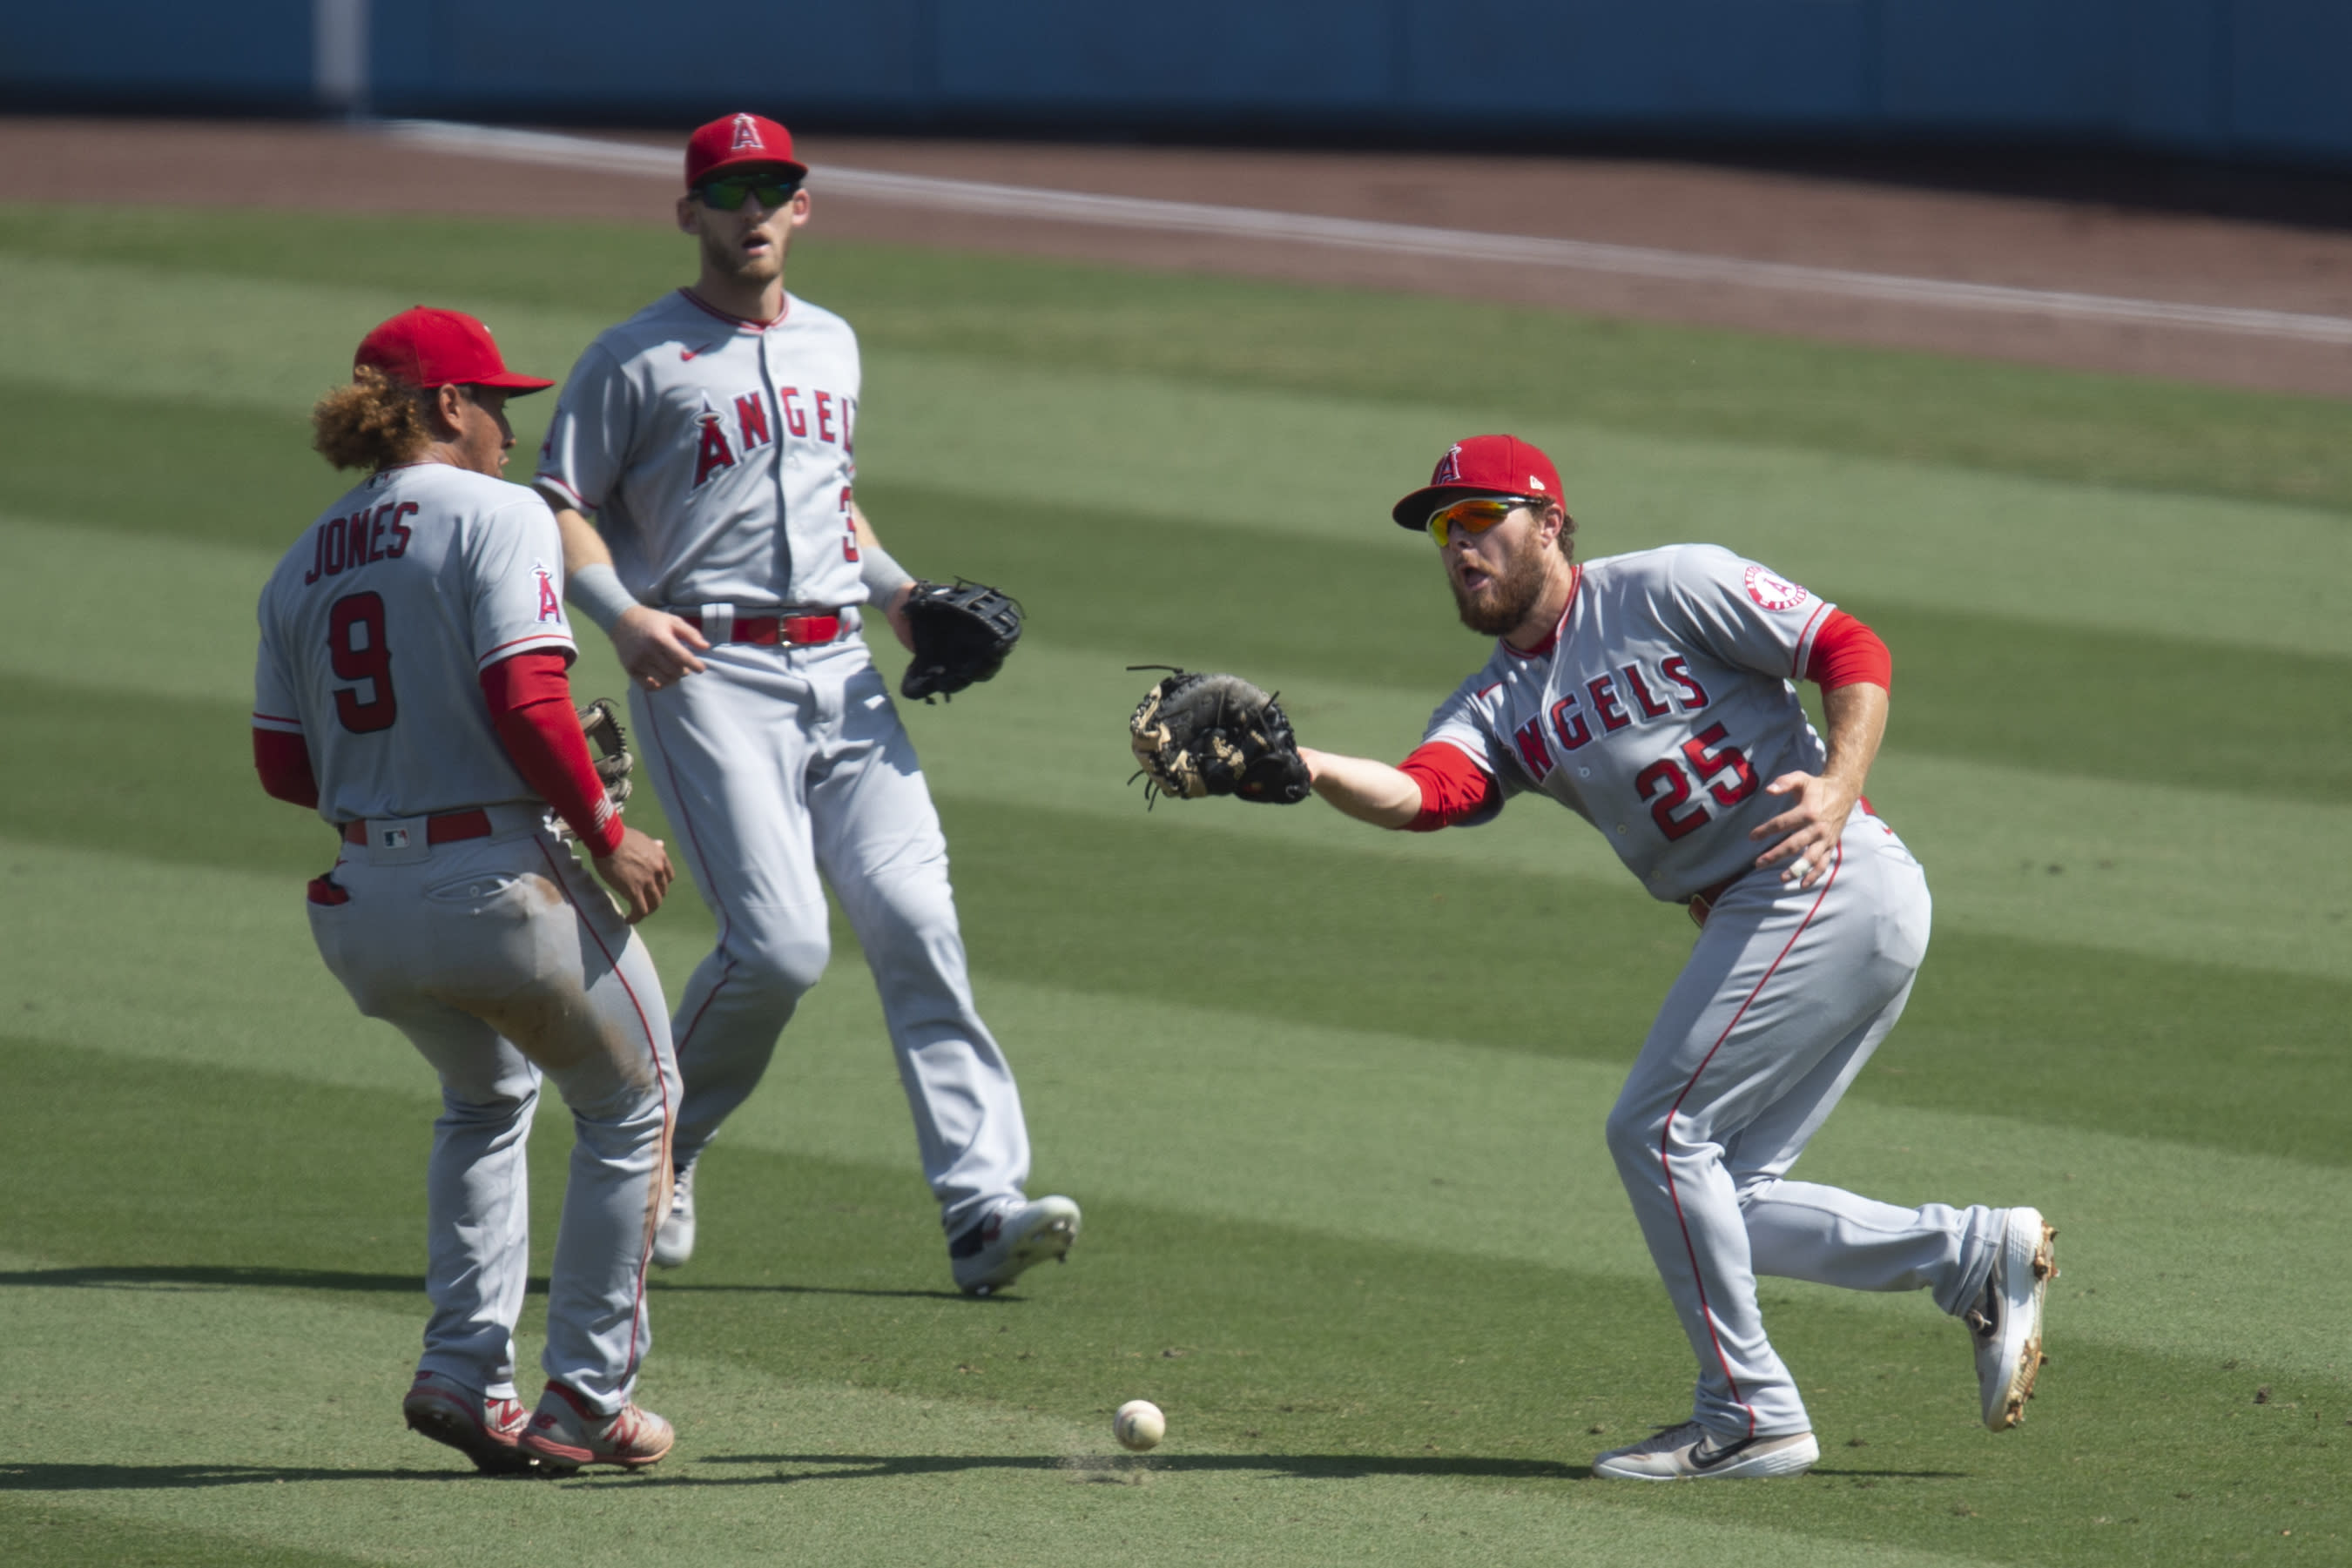 Los Angeles Angels first baseman Jared Walsh, right, cannot catch a fly ball off the bat of Los Angeles Dodgers' Justin Turner during the third inning of a baseball game in Los Angeles, Sunday, Sept. 27, 2020. (AP Photo/Kyusung Gong)